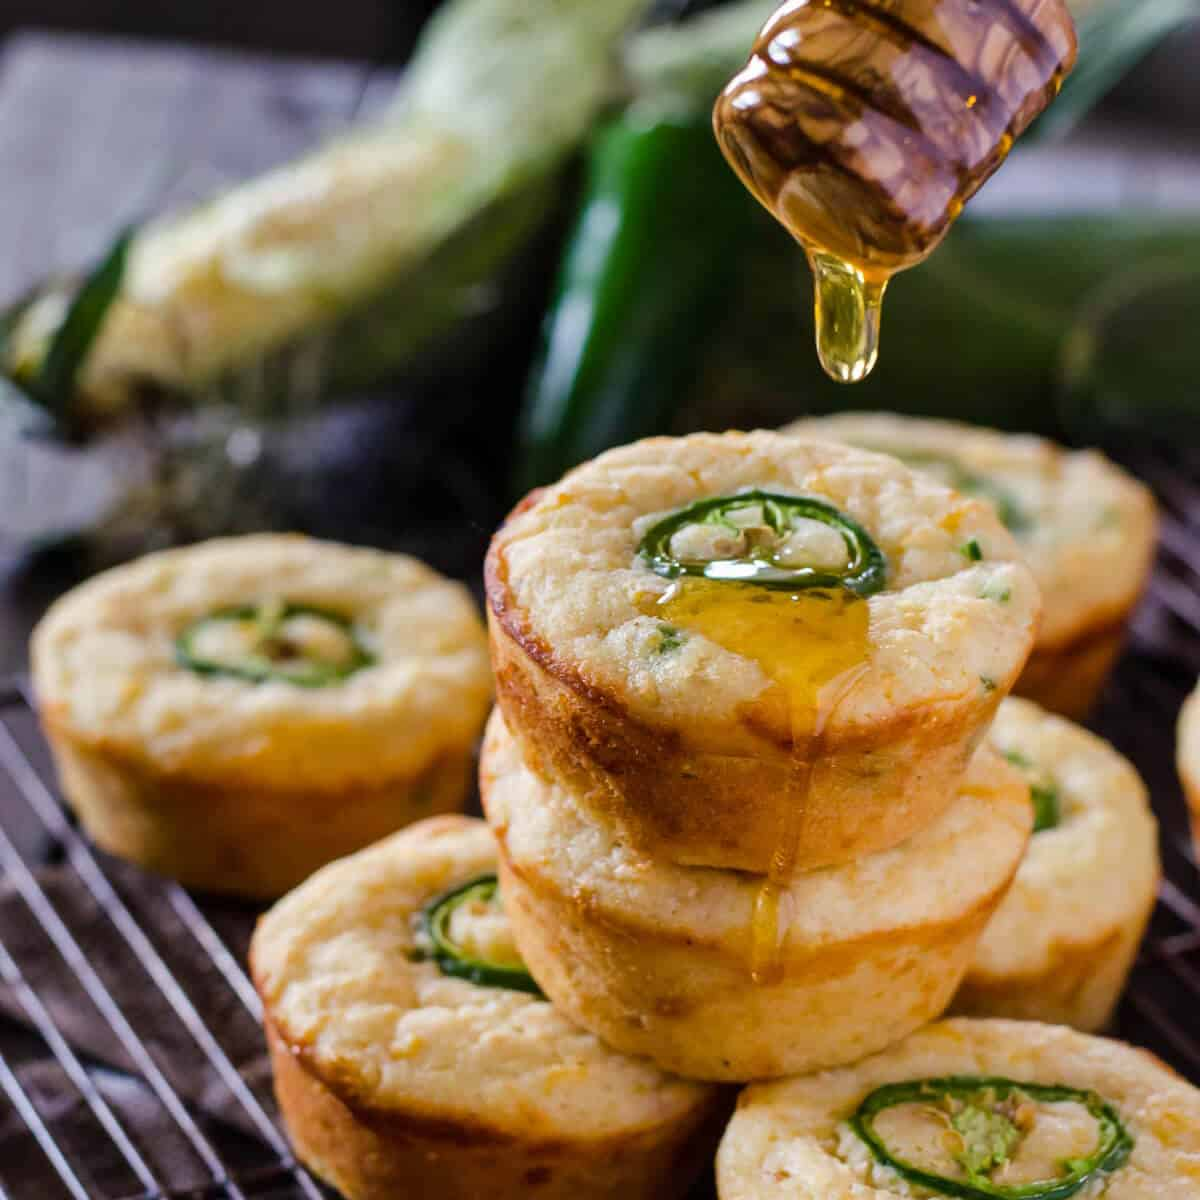 Most Popular in 2016: #3 Jalapeno Popper Cornbread Muffins